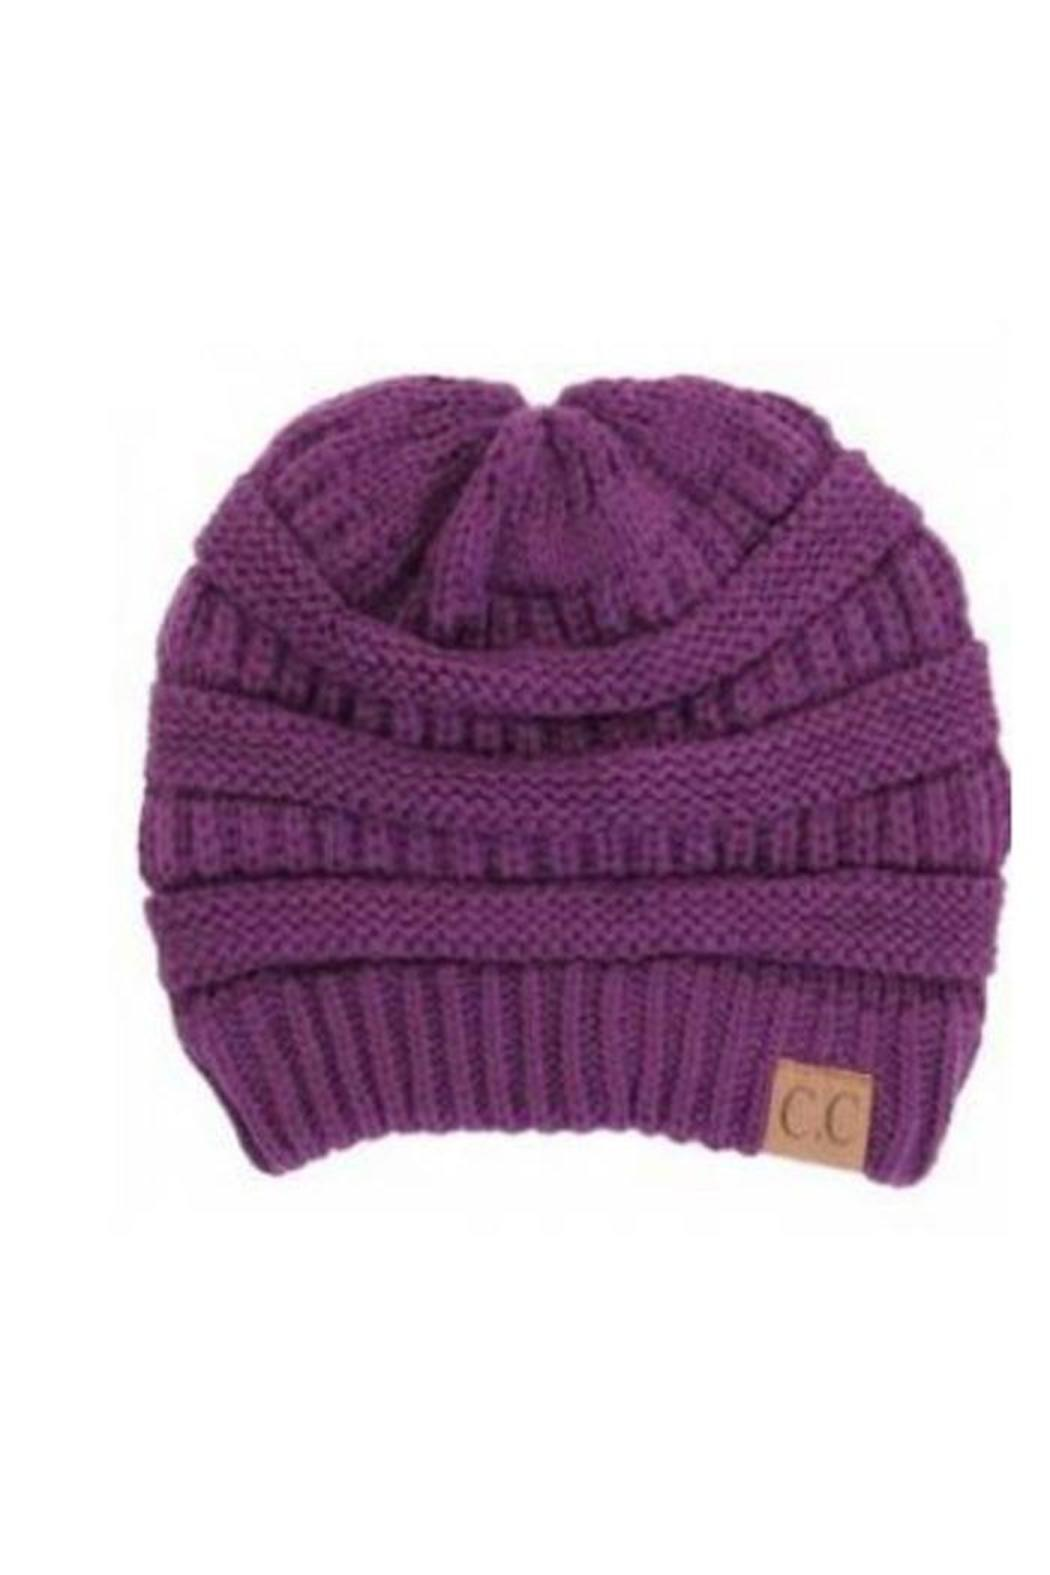 189a9addb167d C.C Beanie Ribbed Colored Beanie from Minneapolis by StyleTrolley